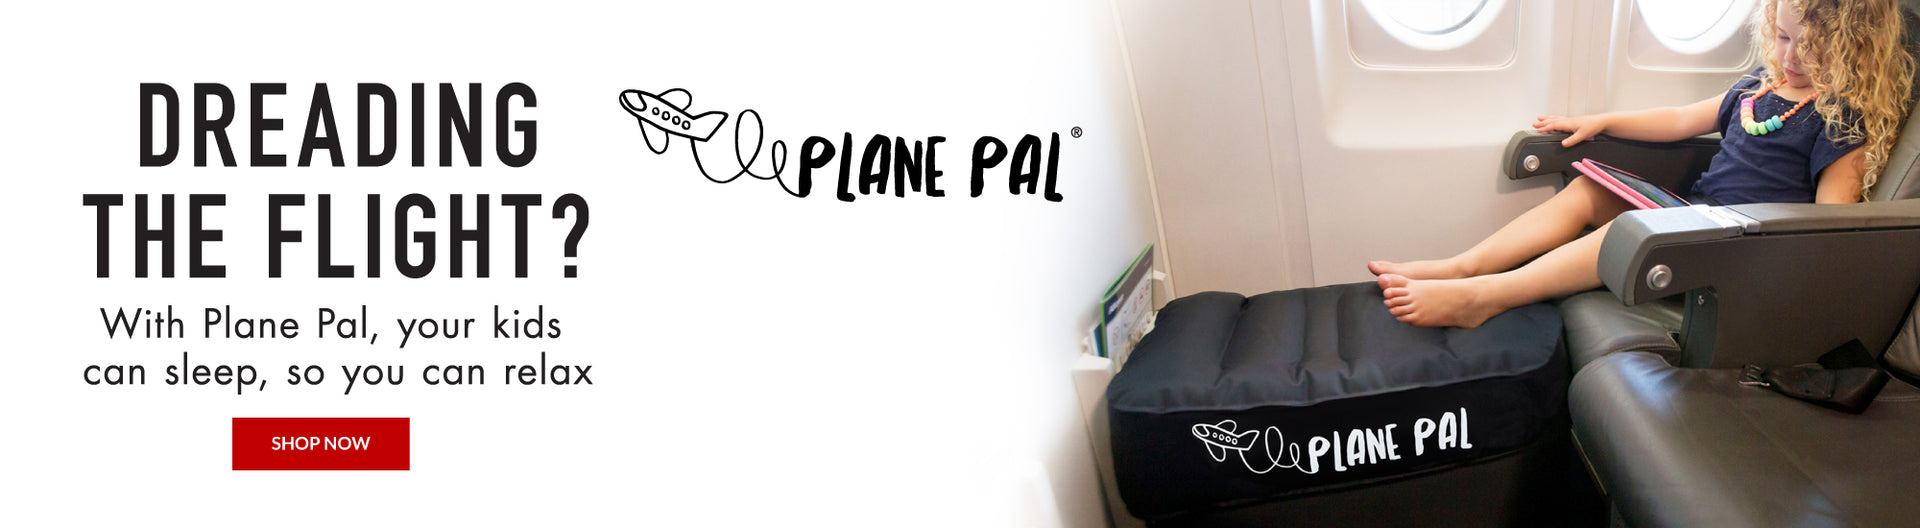 Plane Pal Travel Pillow for Kids - Canada Luggage Depot